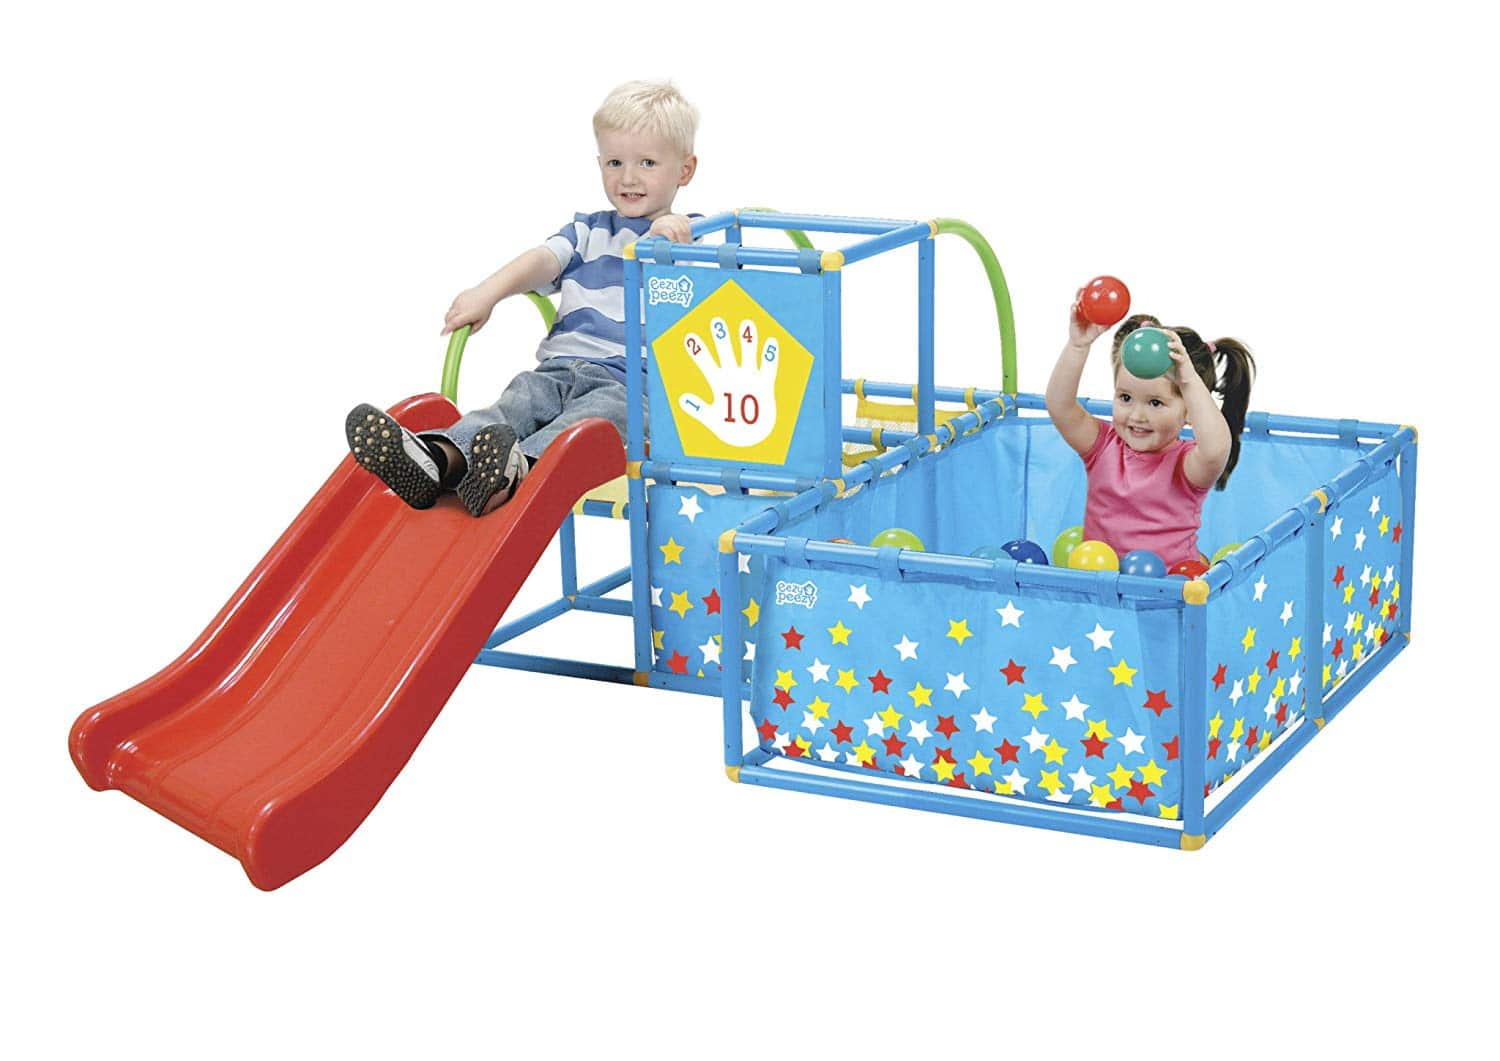 The best backyard playsets for toddlers reviews to buy easy